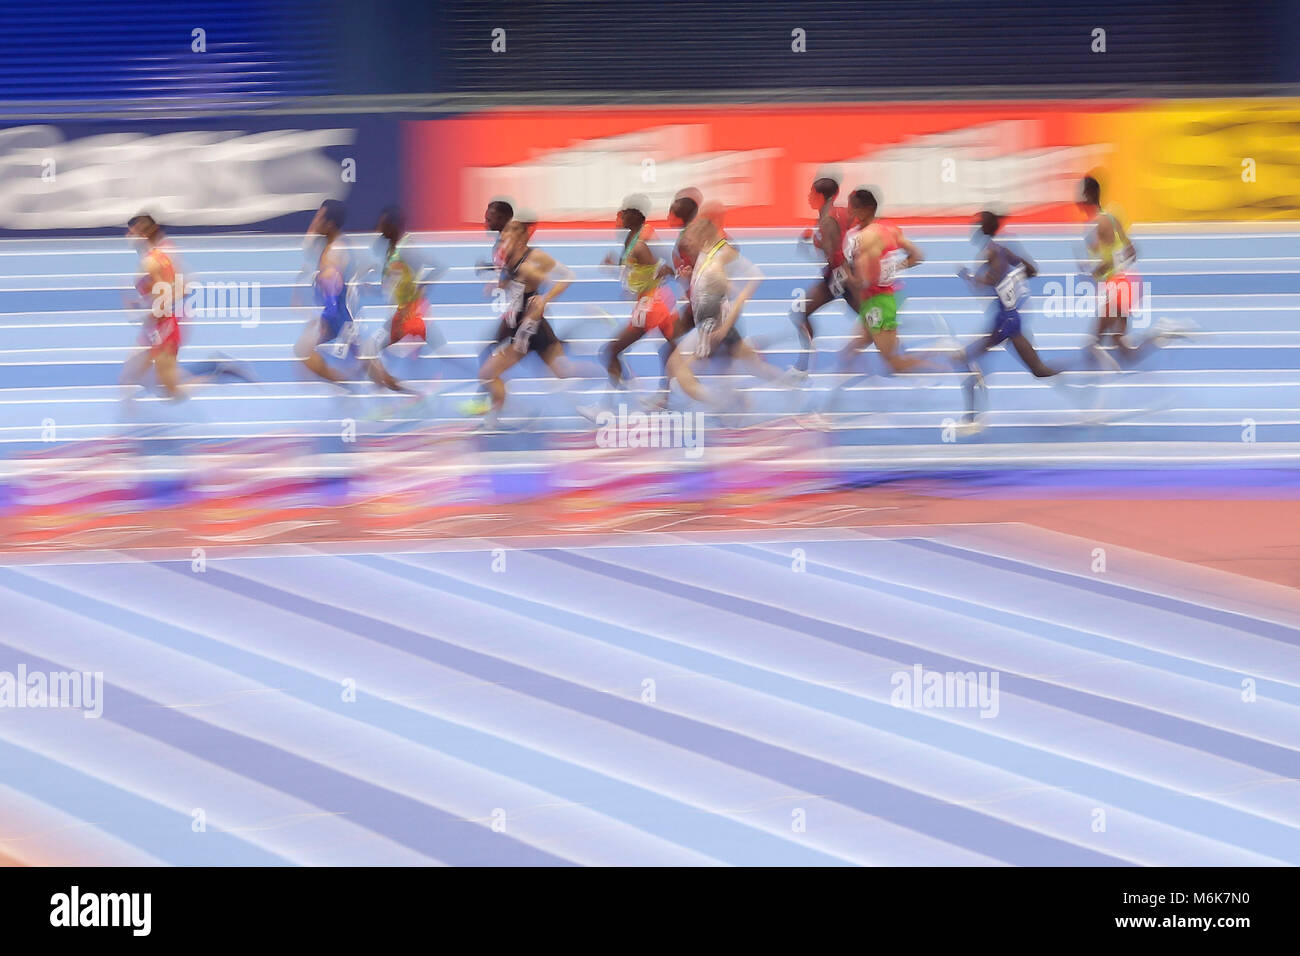 Birmingham. 4th Mar, 2018. Runners compete during the men's 3000m final of the IAAF World Indoor Championships - Stock Image